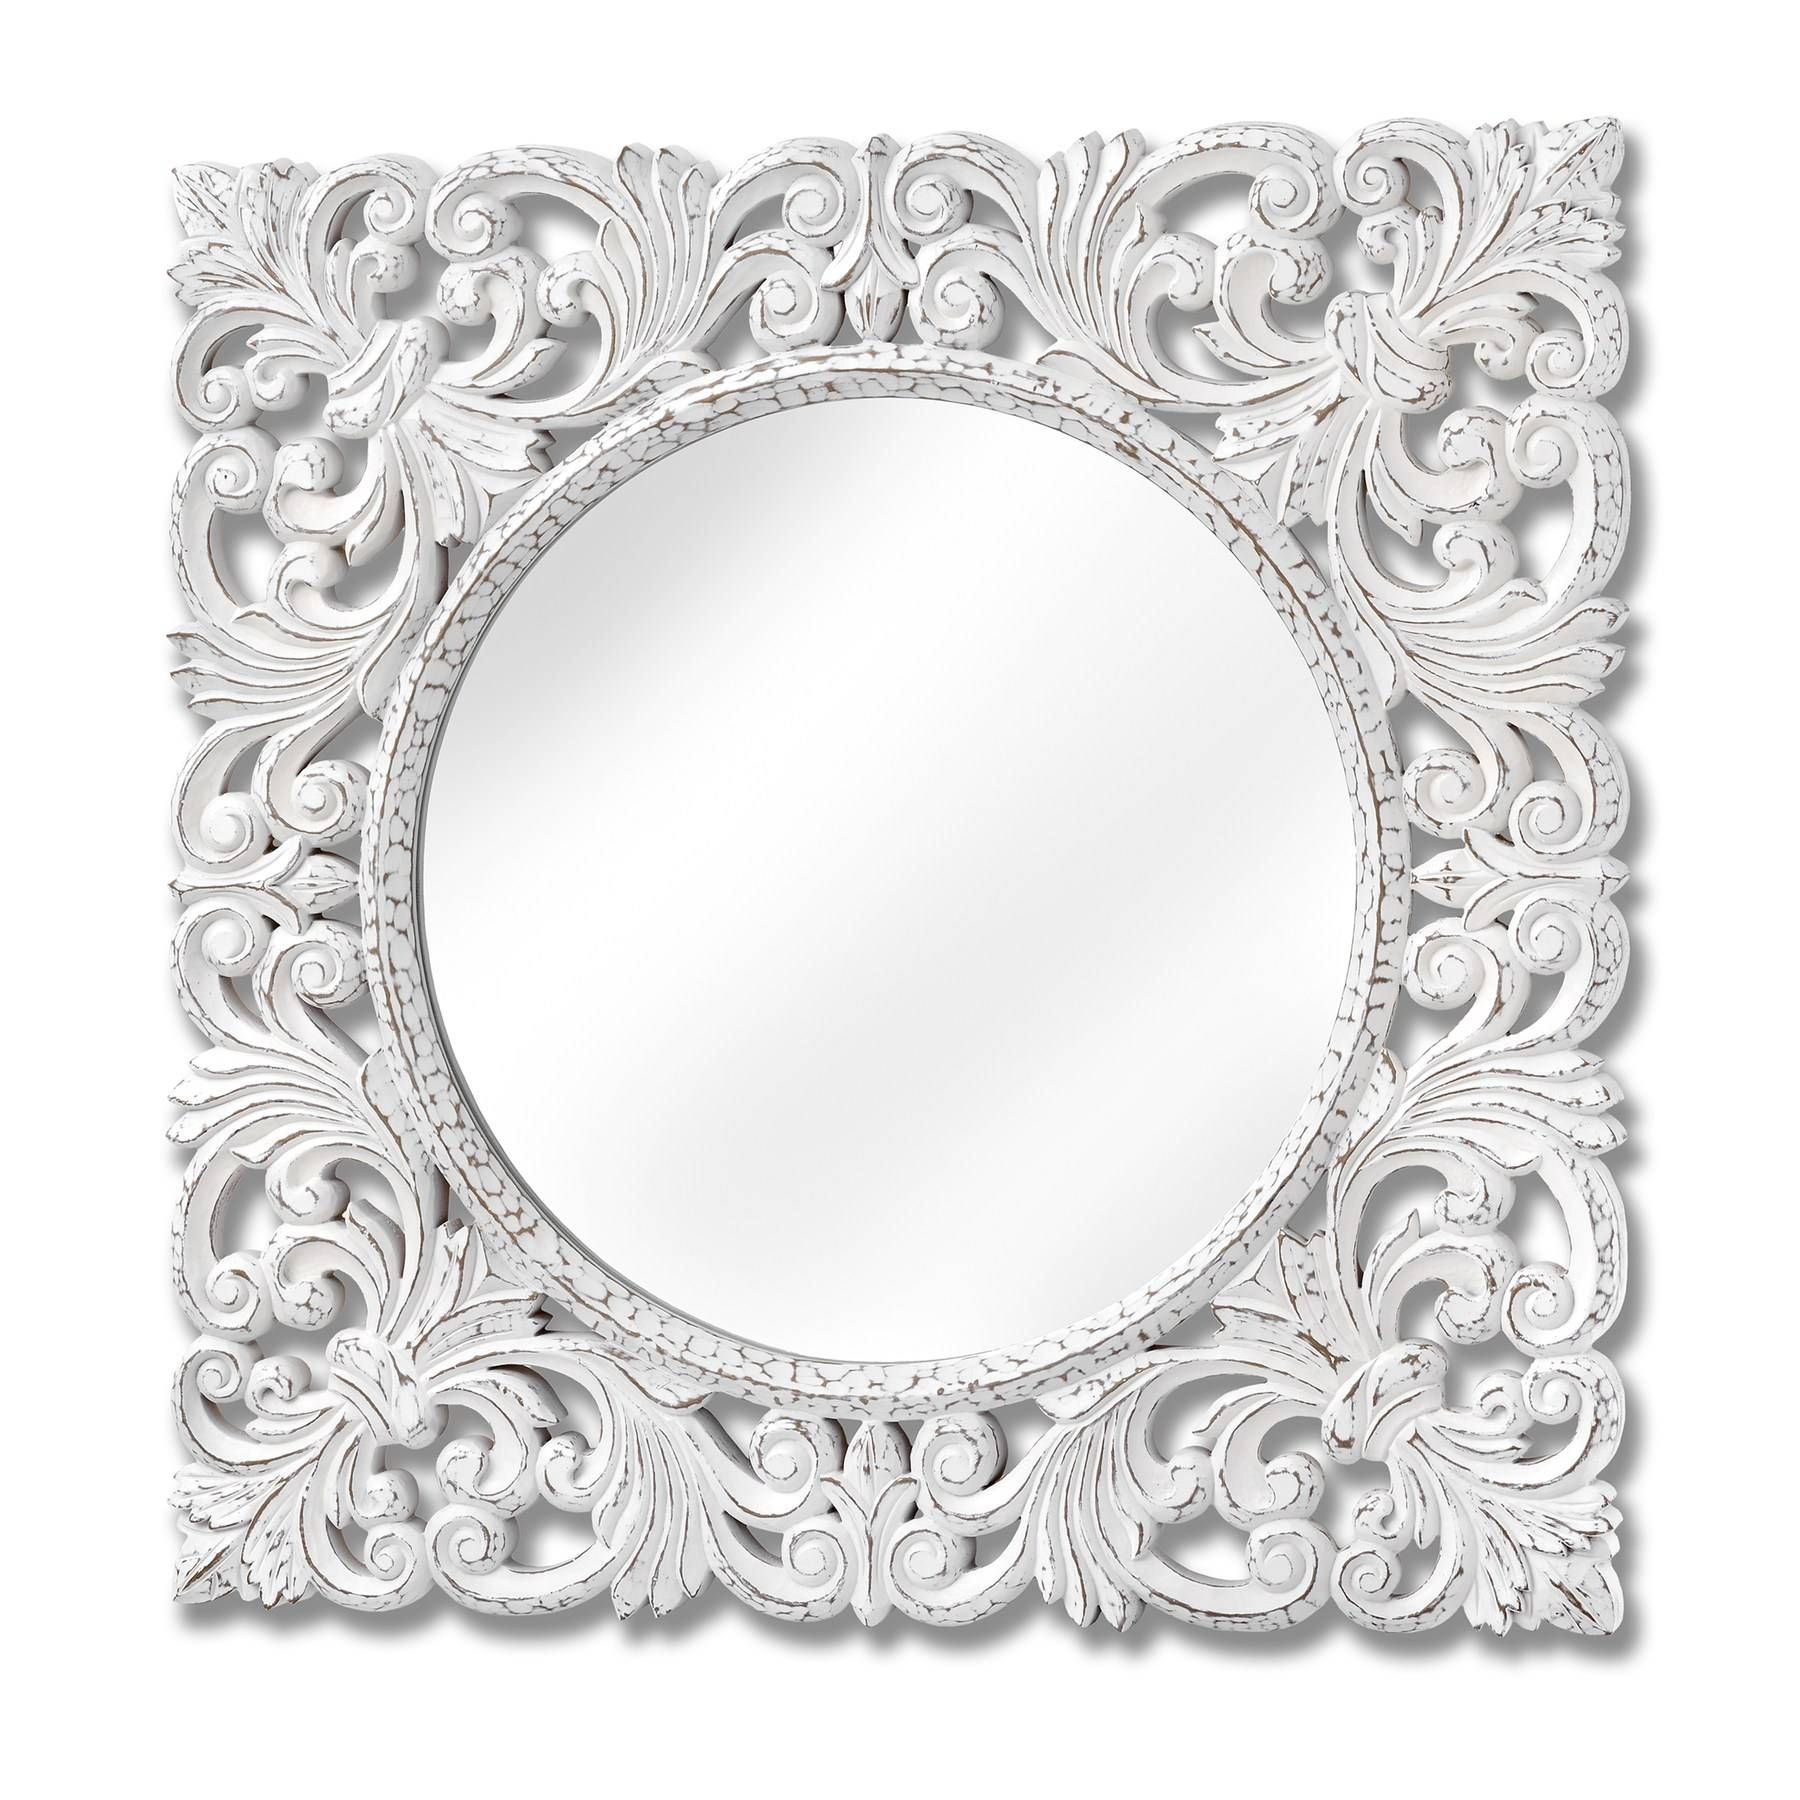 Wall Mirrors – Melody Maison® (Page 2) With Baroque Wall Mirrors (View 15 of 15)